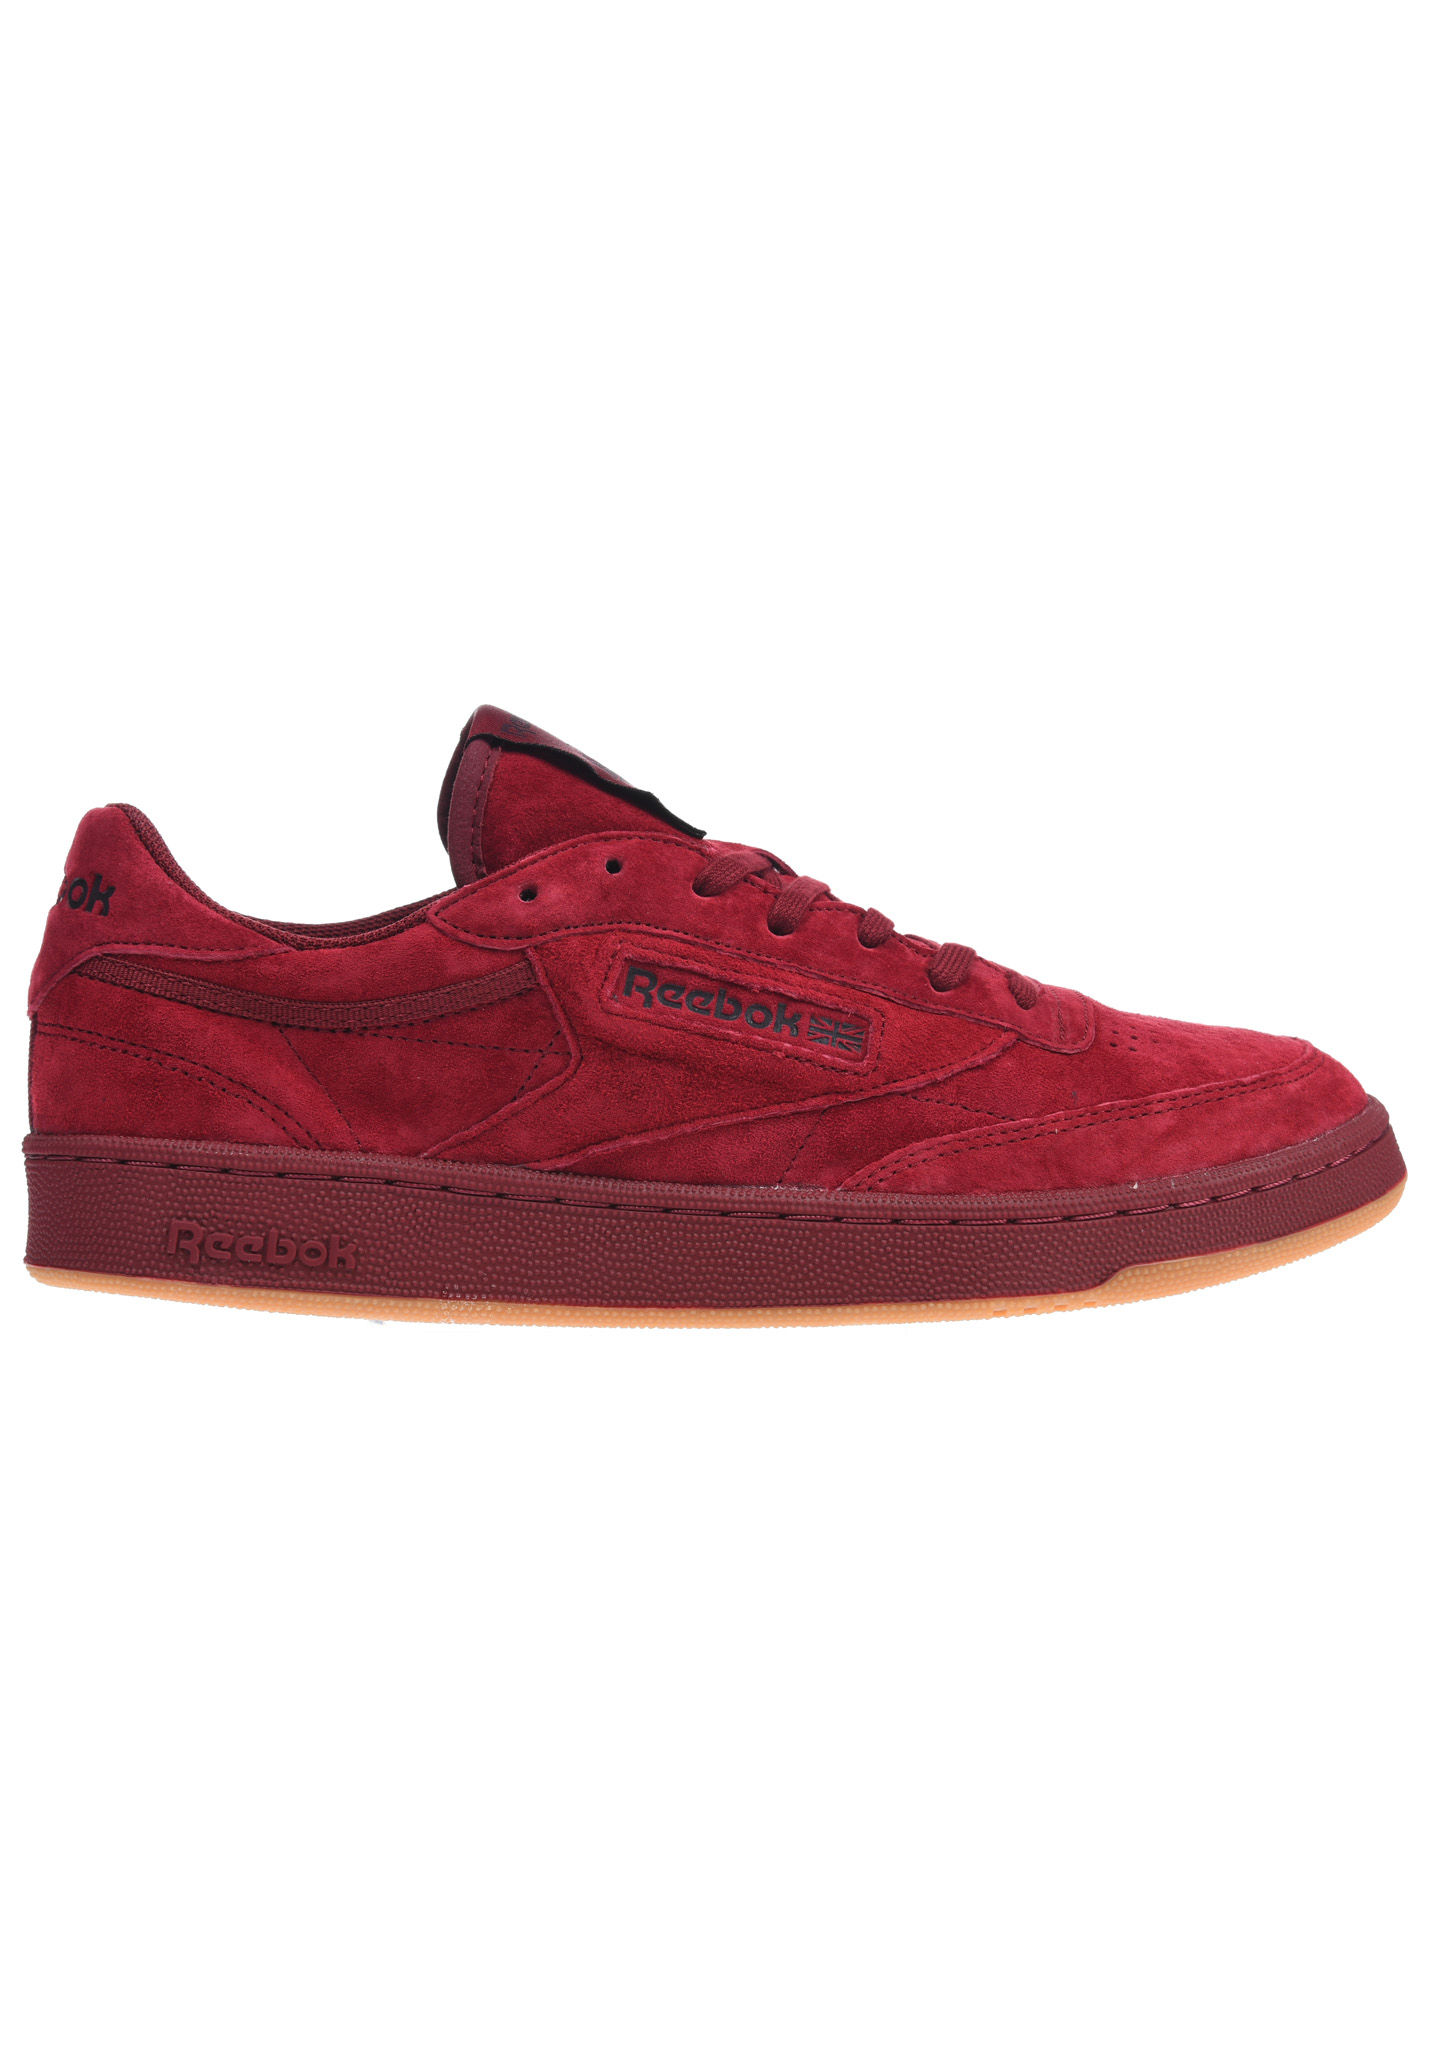 Chaussures Reebok rouges homme